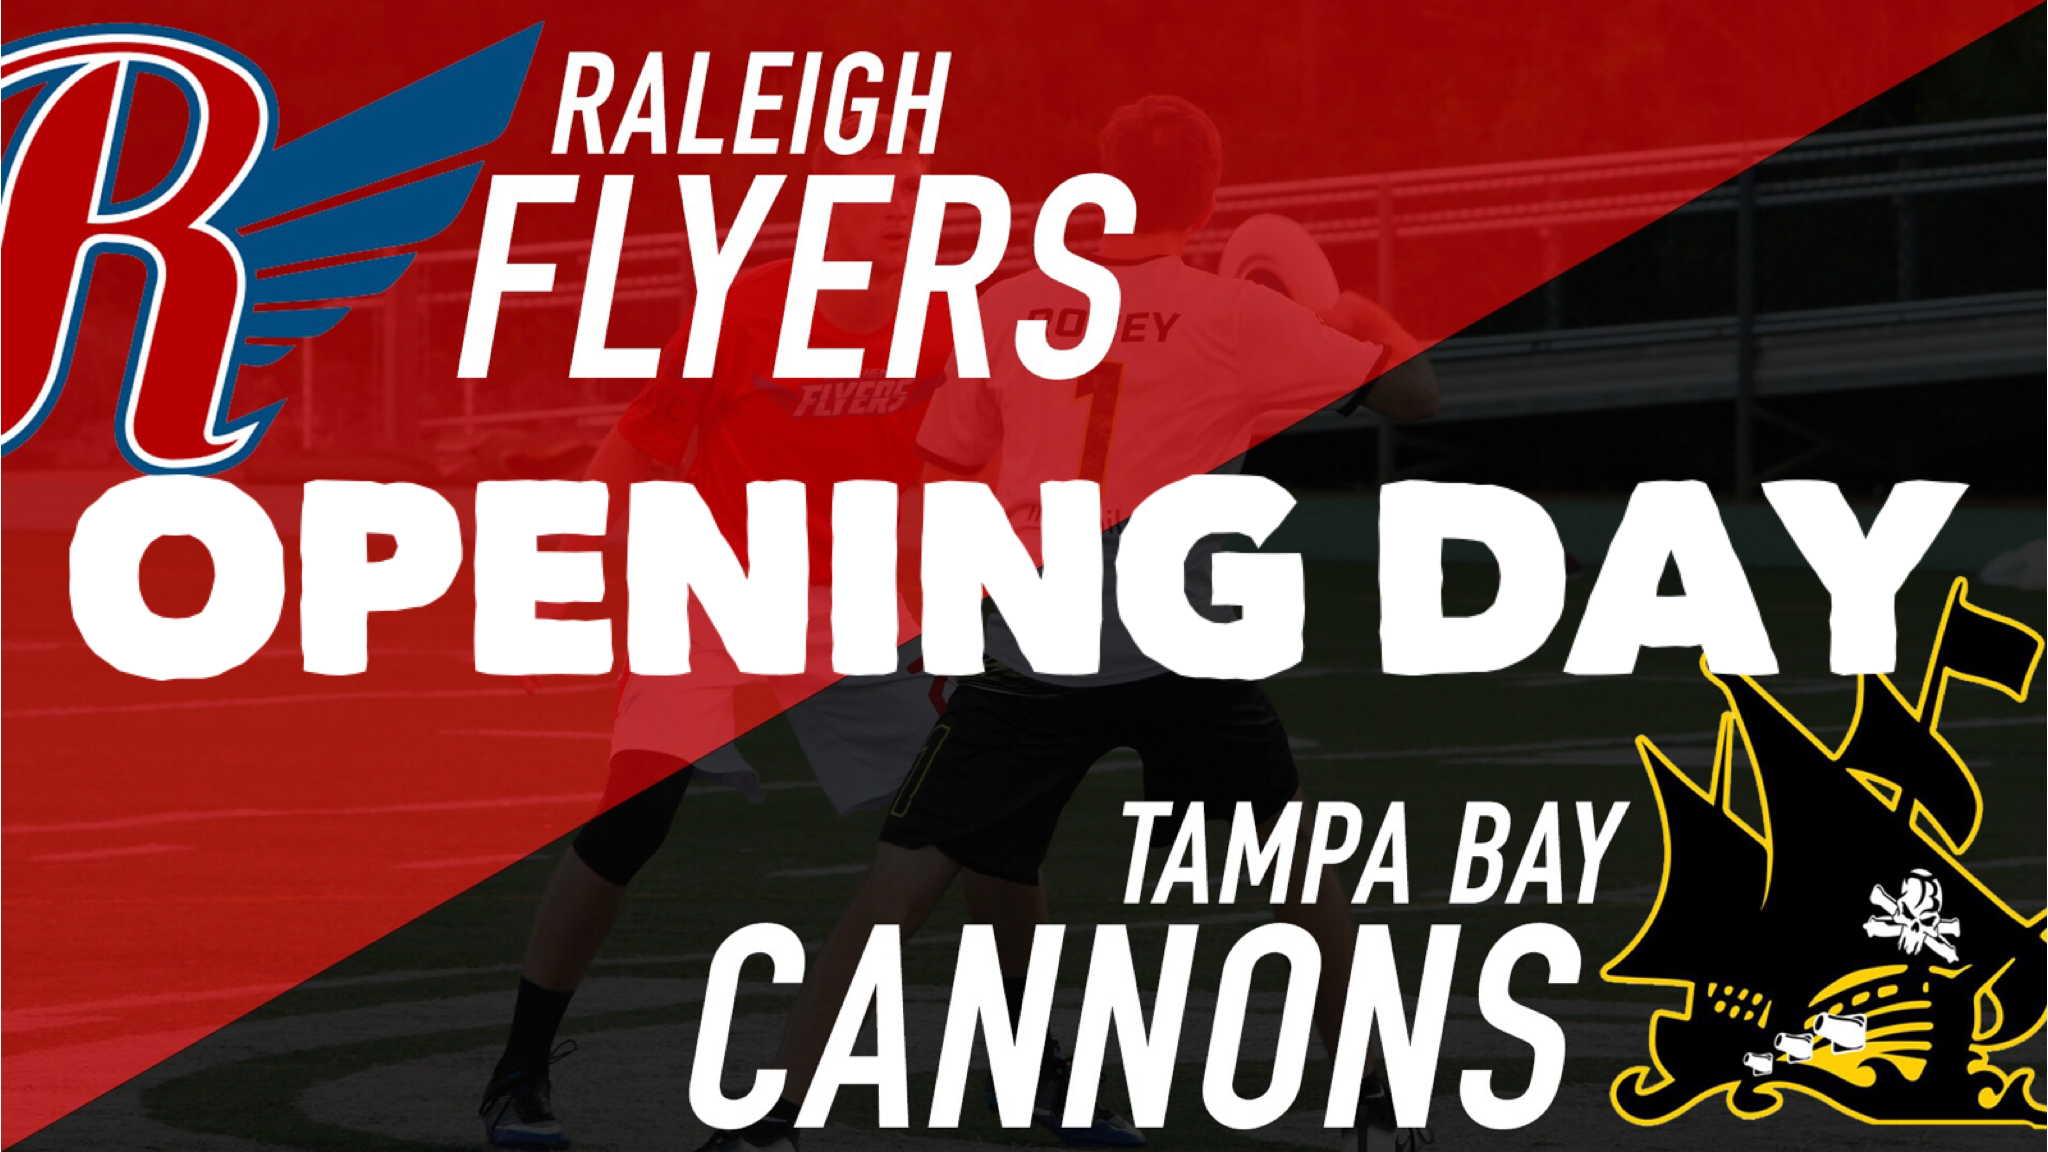 raleigh flyers v tampa bay cannons opening day 31 mar 2018